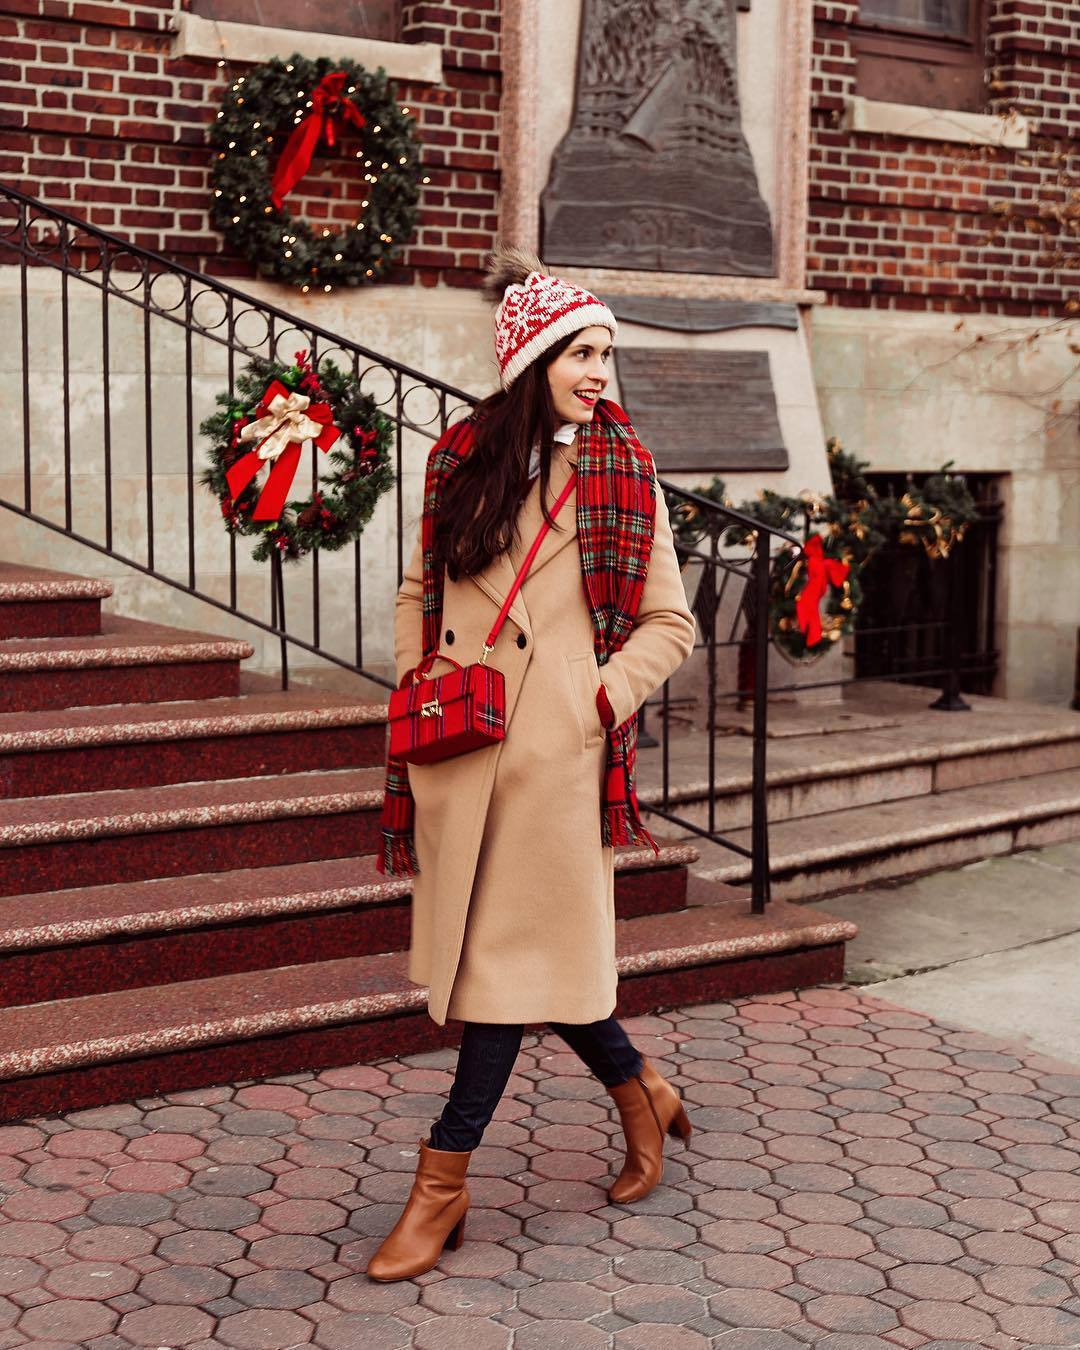 hat knitted beanie brown boots heel boots ankle boots skinny jeans long coat camel coat double breasted plaid scarf crossbody bag boxed bag